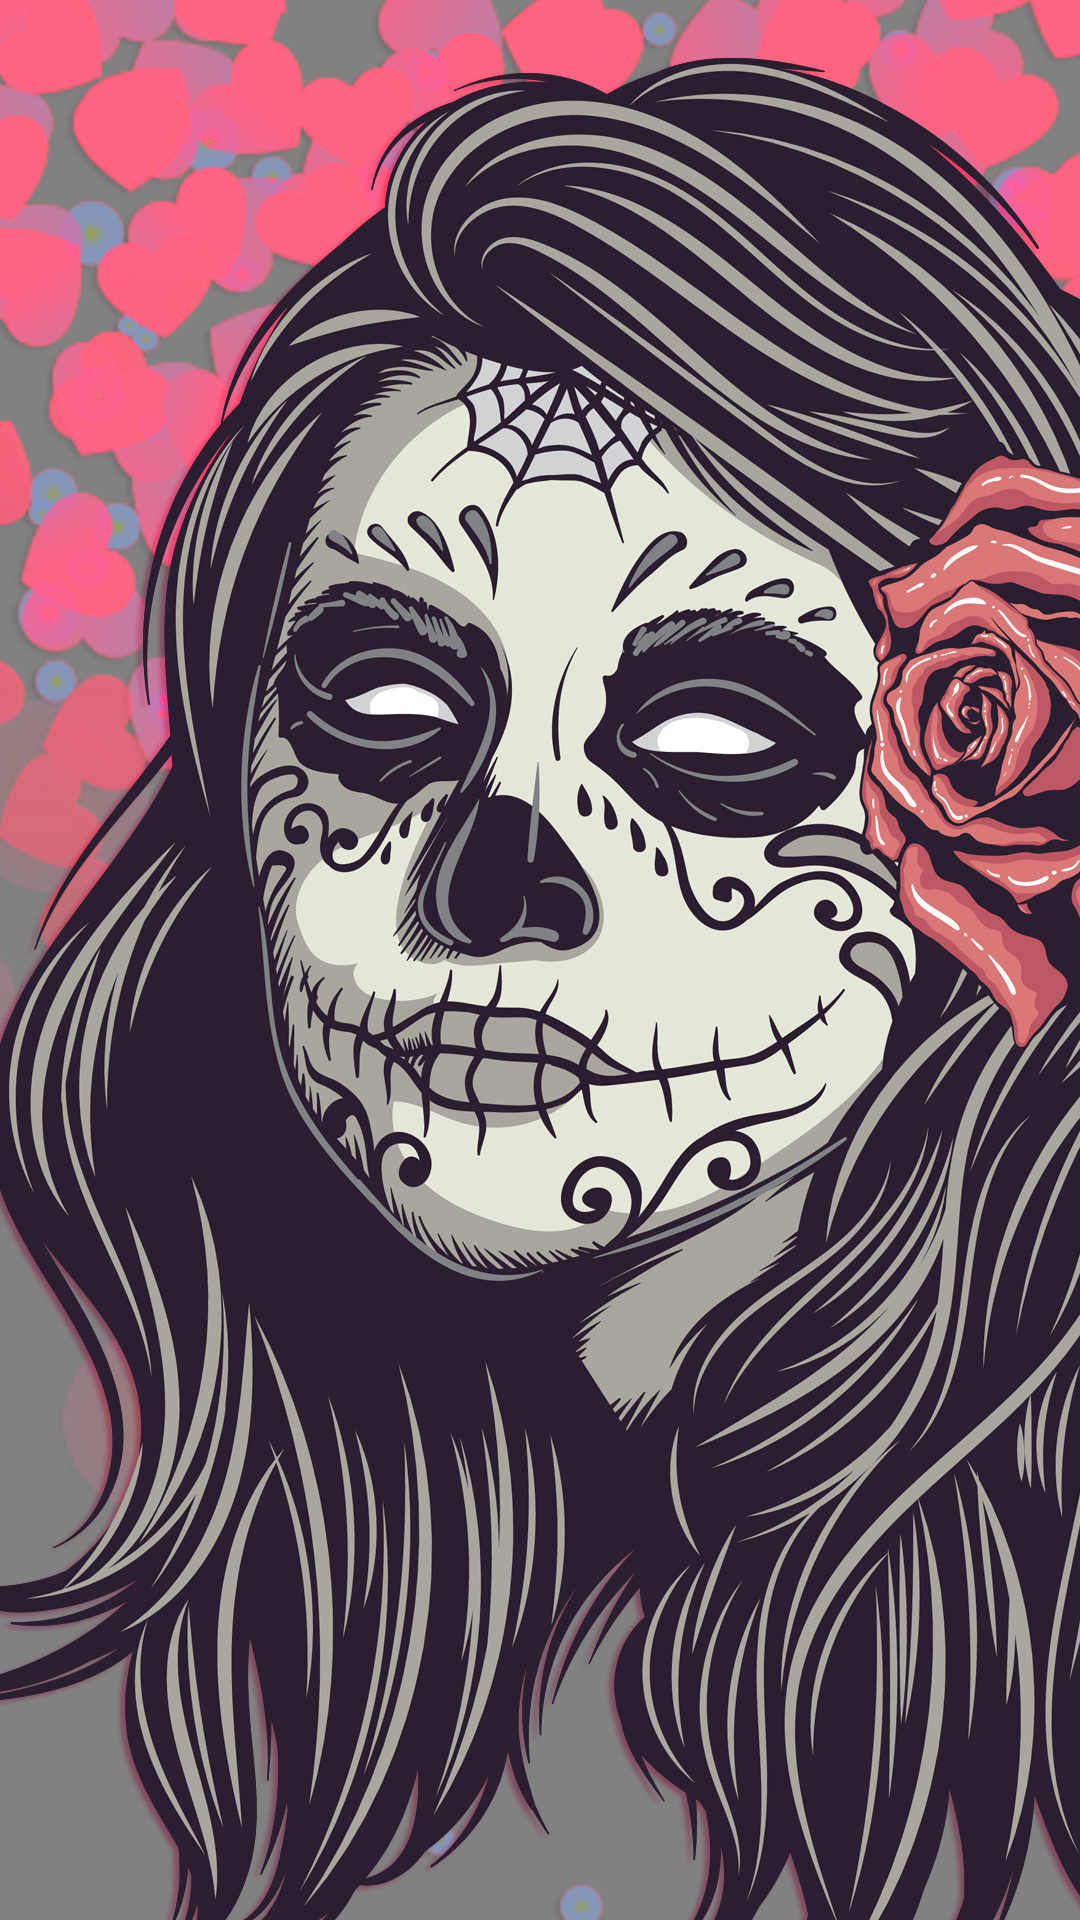 Free hd mexican girl skull phone wallpaper2303 mexican girl skull phone wallpaper voltagebd Gallery